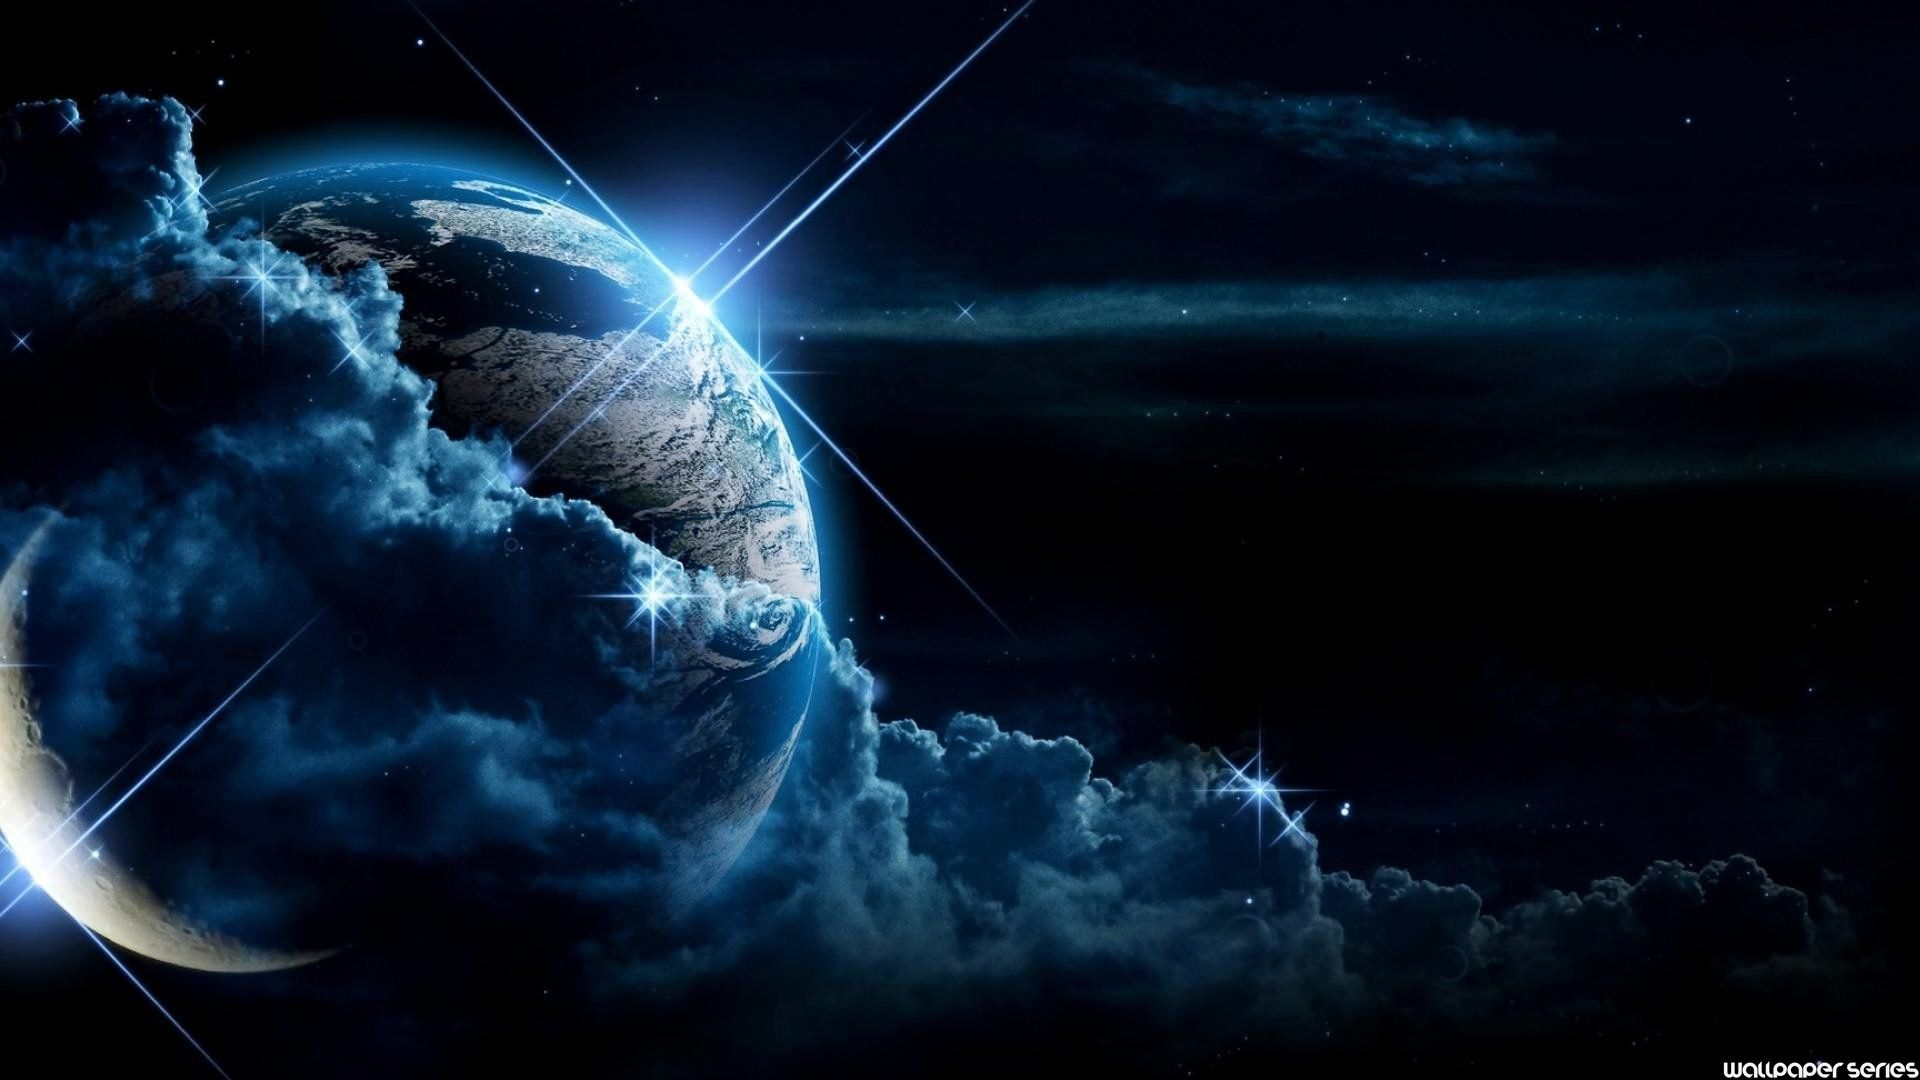 Cool Backgrounds Hd Space Wallpaper Now Cool Desktop Backgrounds Cool Backgrounds Cool Desktop Wallpapers